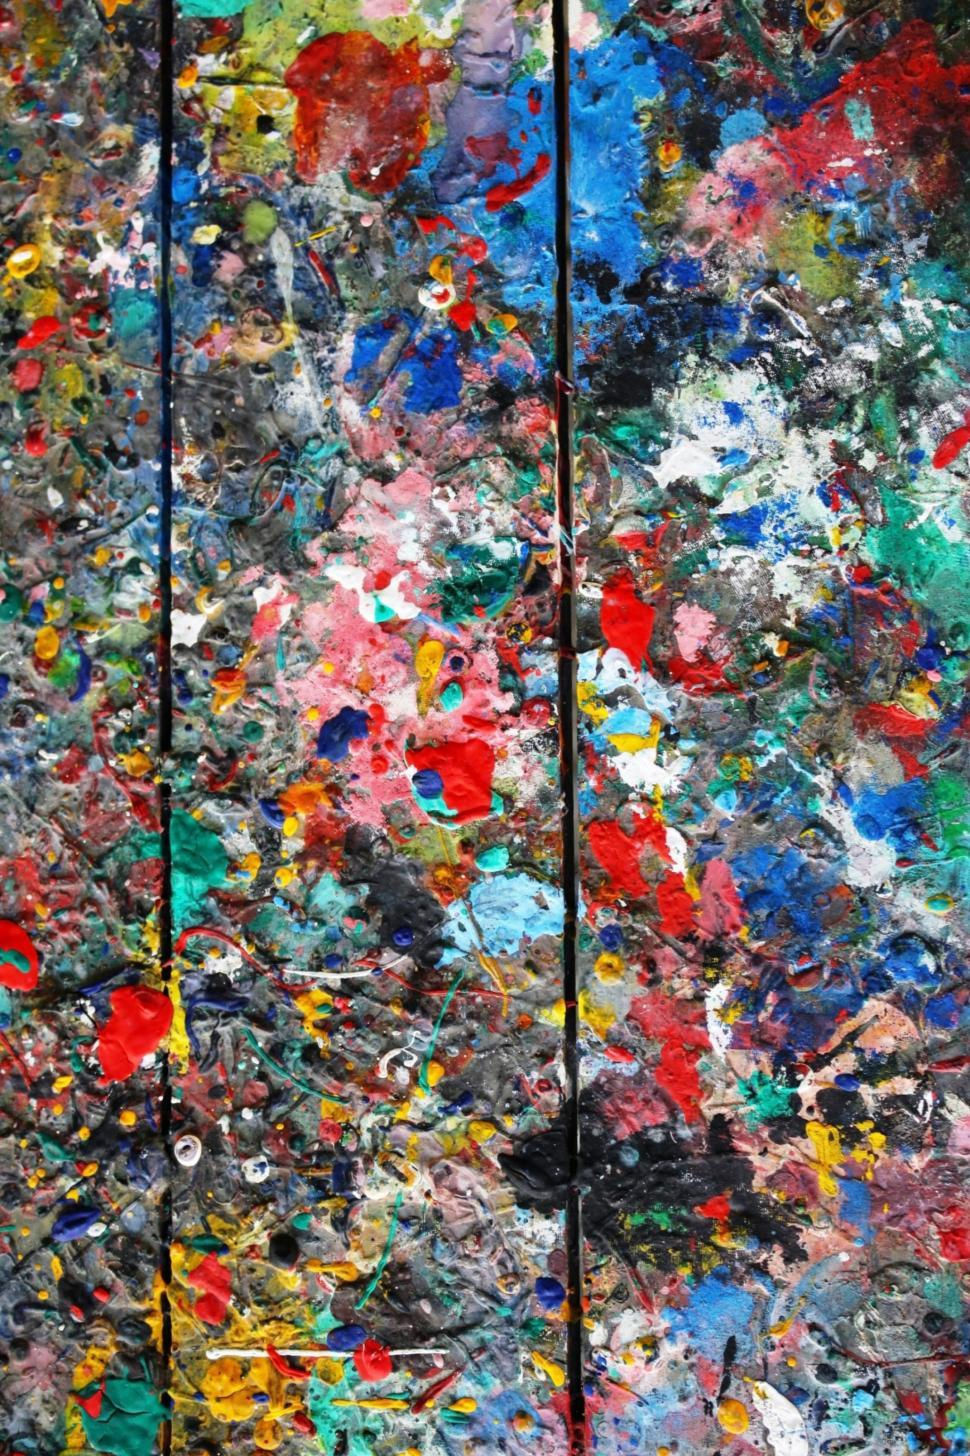 Download Free Stock HD Photo of Messy colorful artists palette  Online